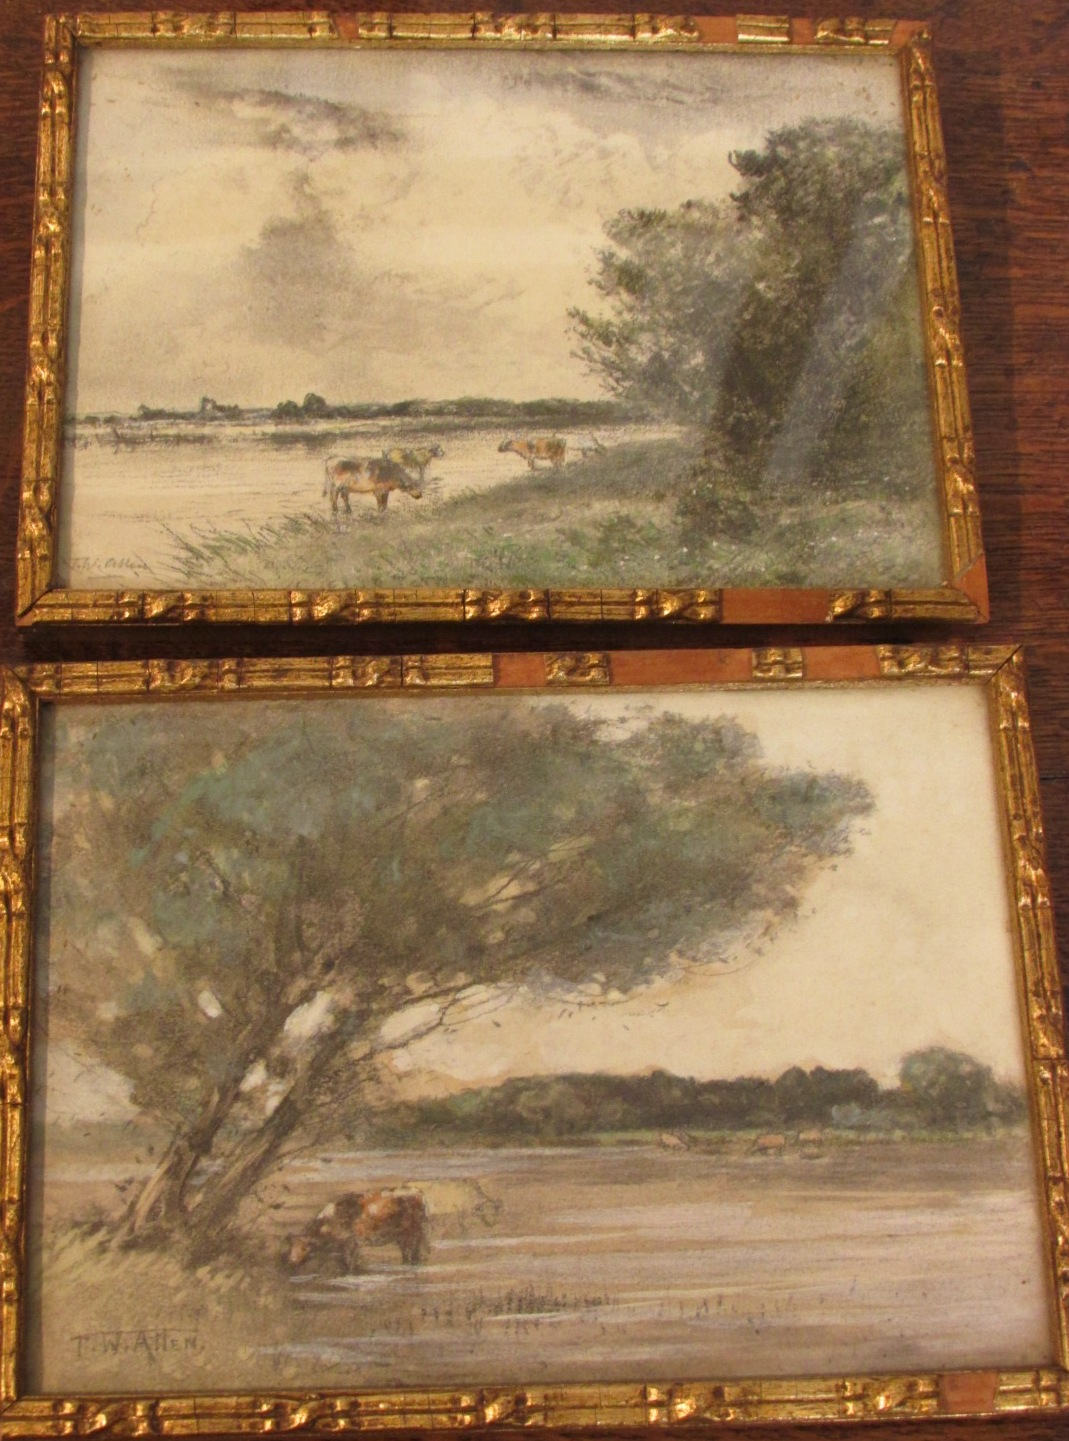 Lot 11 - Two watercolour and graphite sketches of watering cattle, each 12.5cm x 17.5cm and signed T. W.